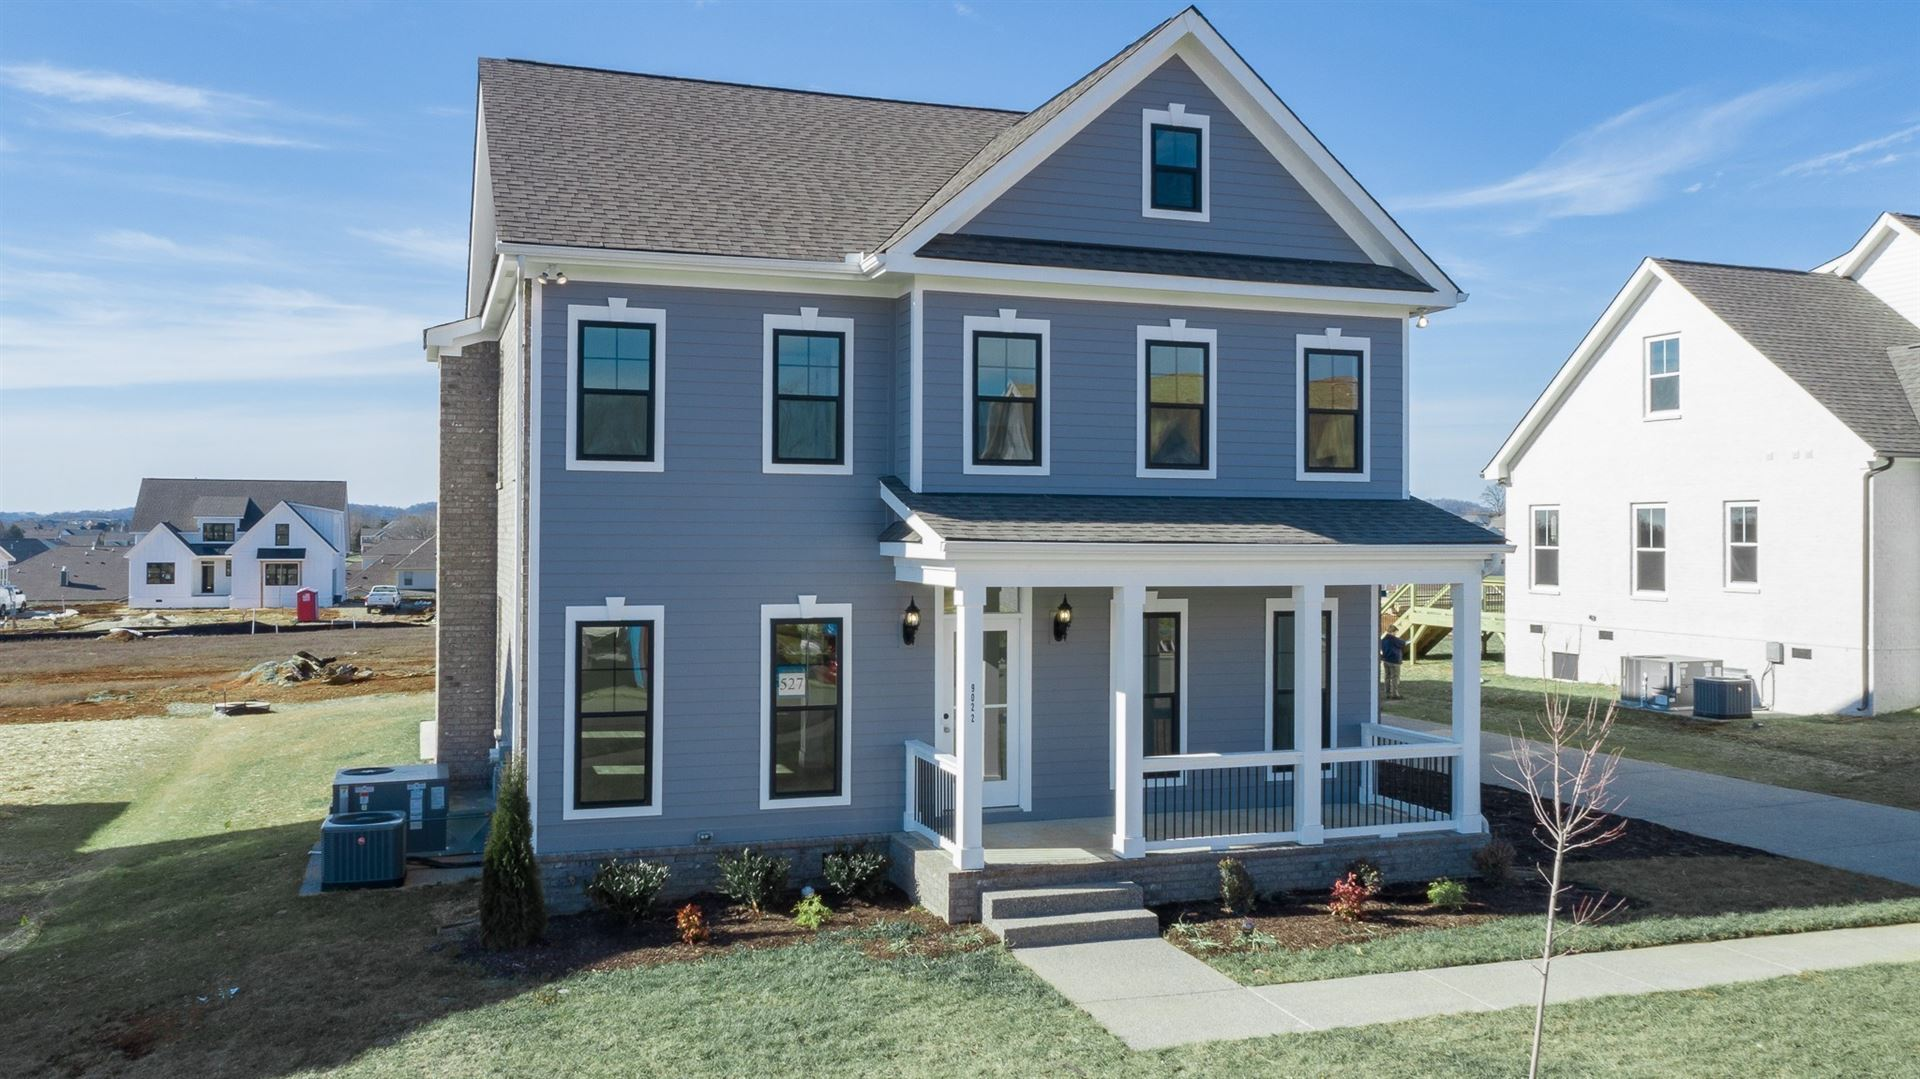 Photo of 8006 Brightwater Way Lot 481, Spring Hill, TN 37174 (MLS # 2275660)